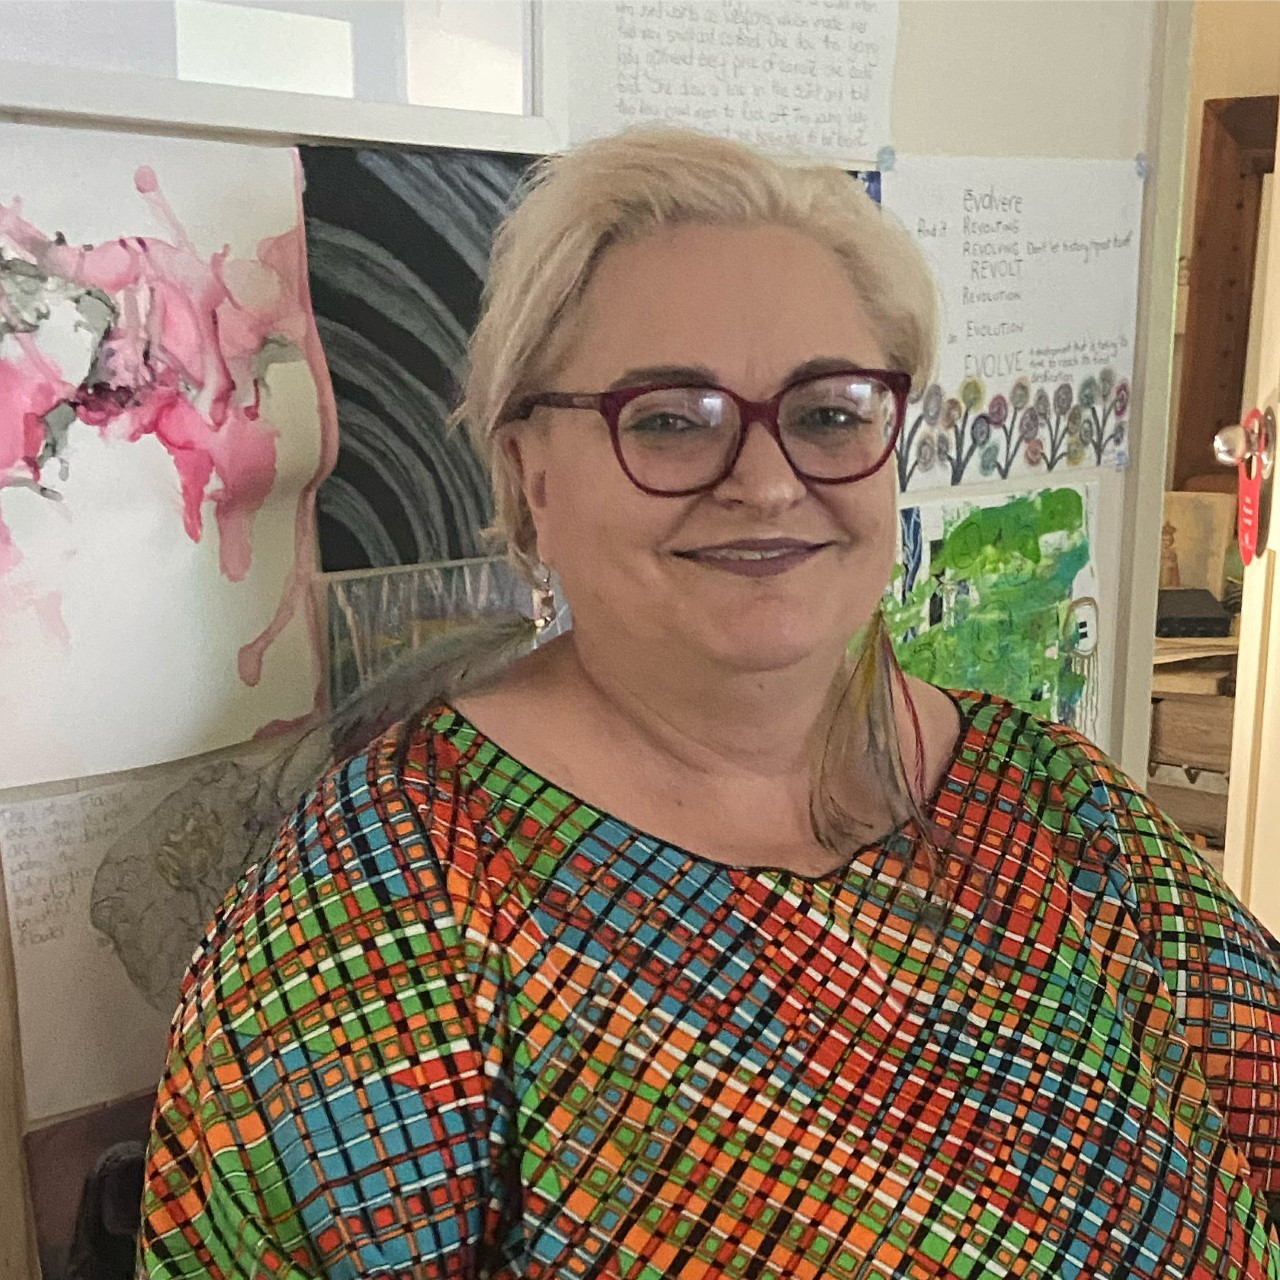 A middle aged white woman wearing pink framed glasses with short blonde hair. She is wearing a multicoloured geometrical Kaftan and standing in front of some artwork.